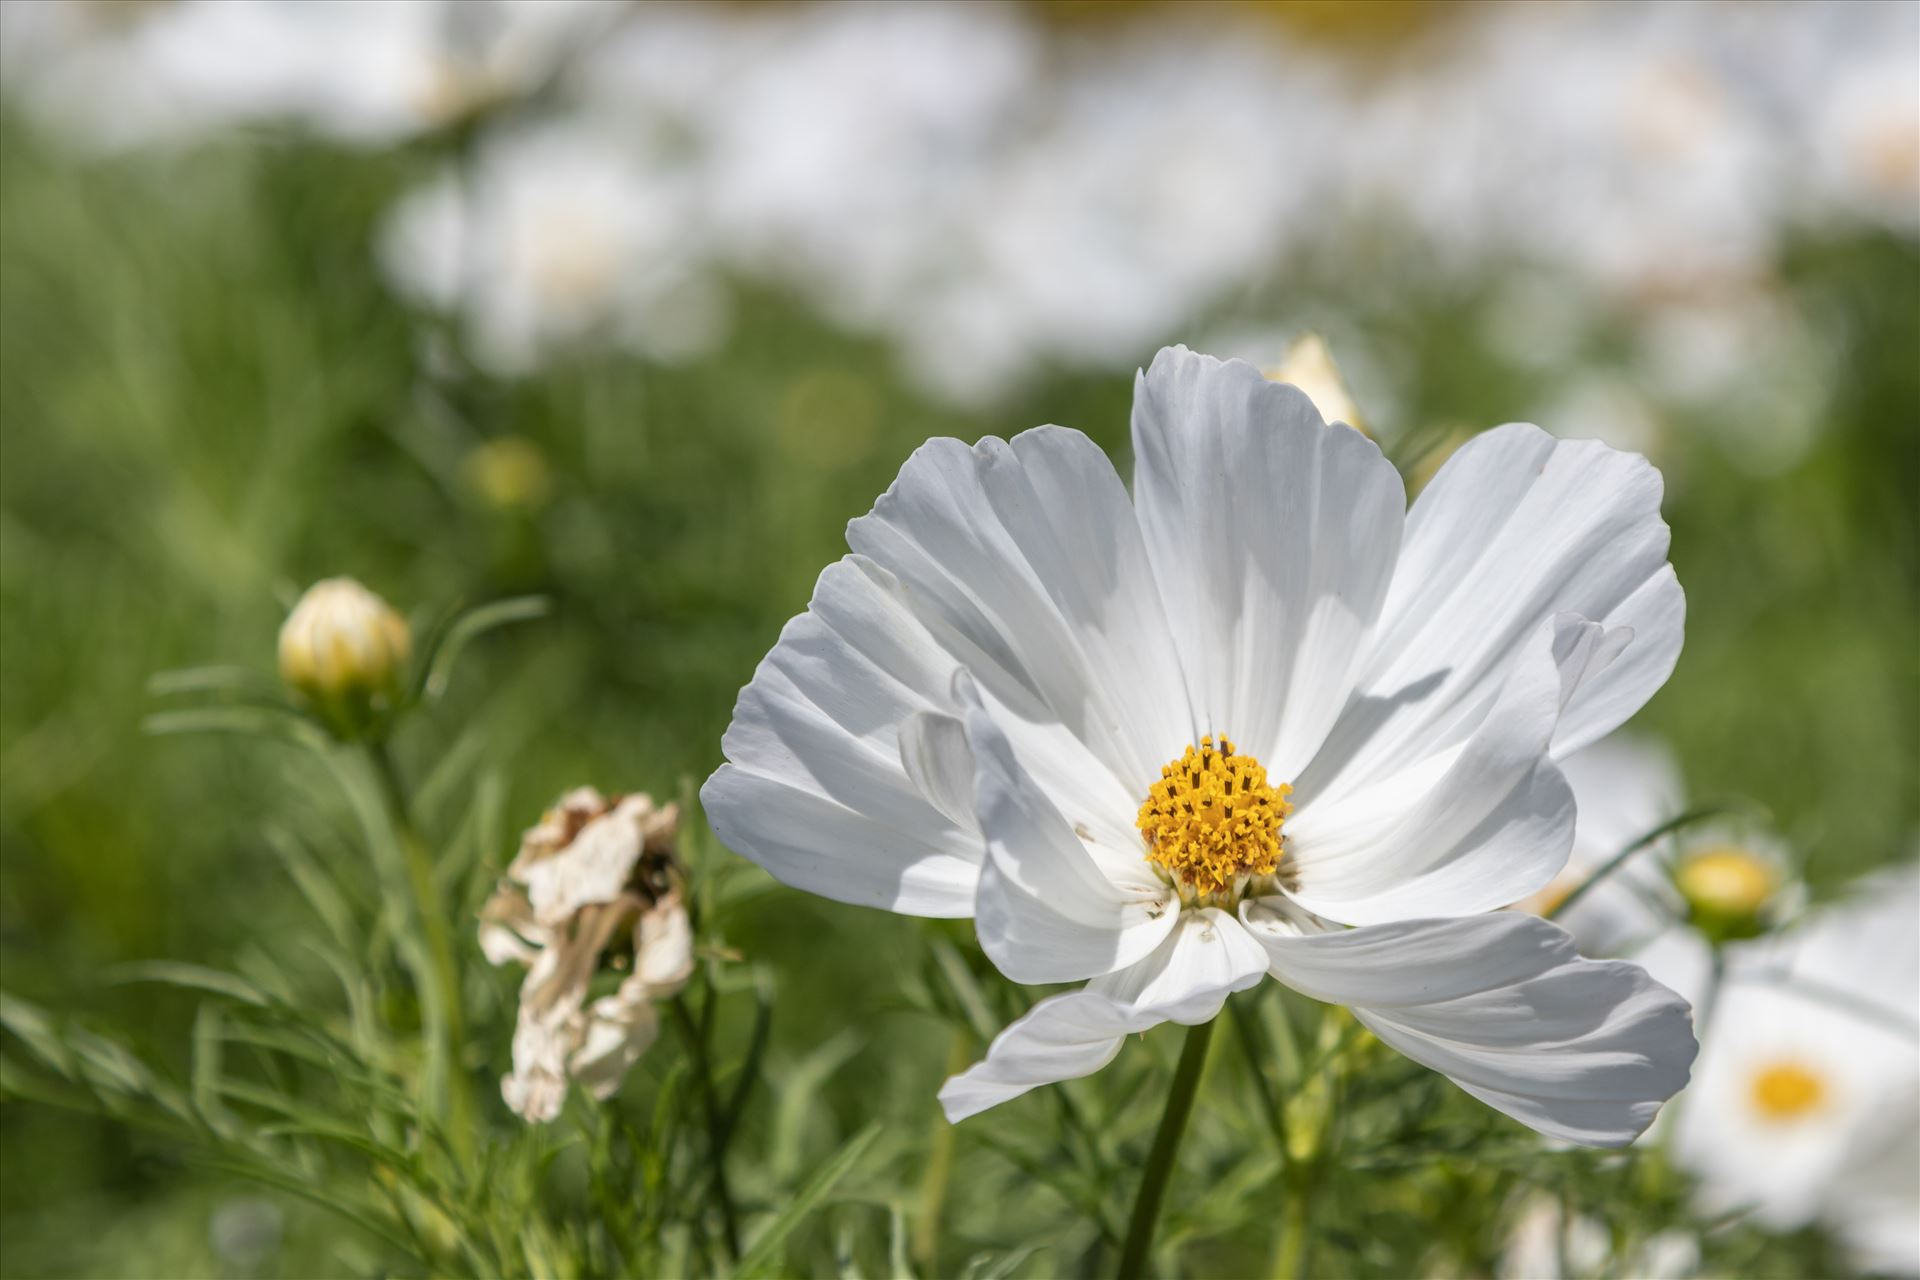 Mexican Aster -White Cosmos Bipinnatus White Cosmos Bipinnatus, also known as Mexican Aster or Garden Cosmos, in Summer in the UK. by Andy Morton Photography